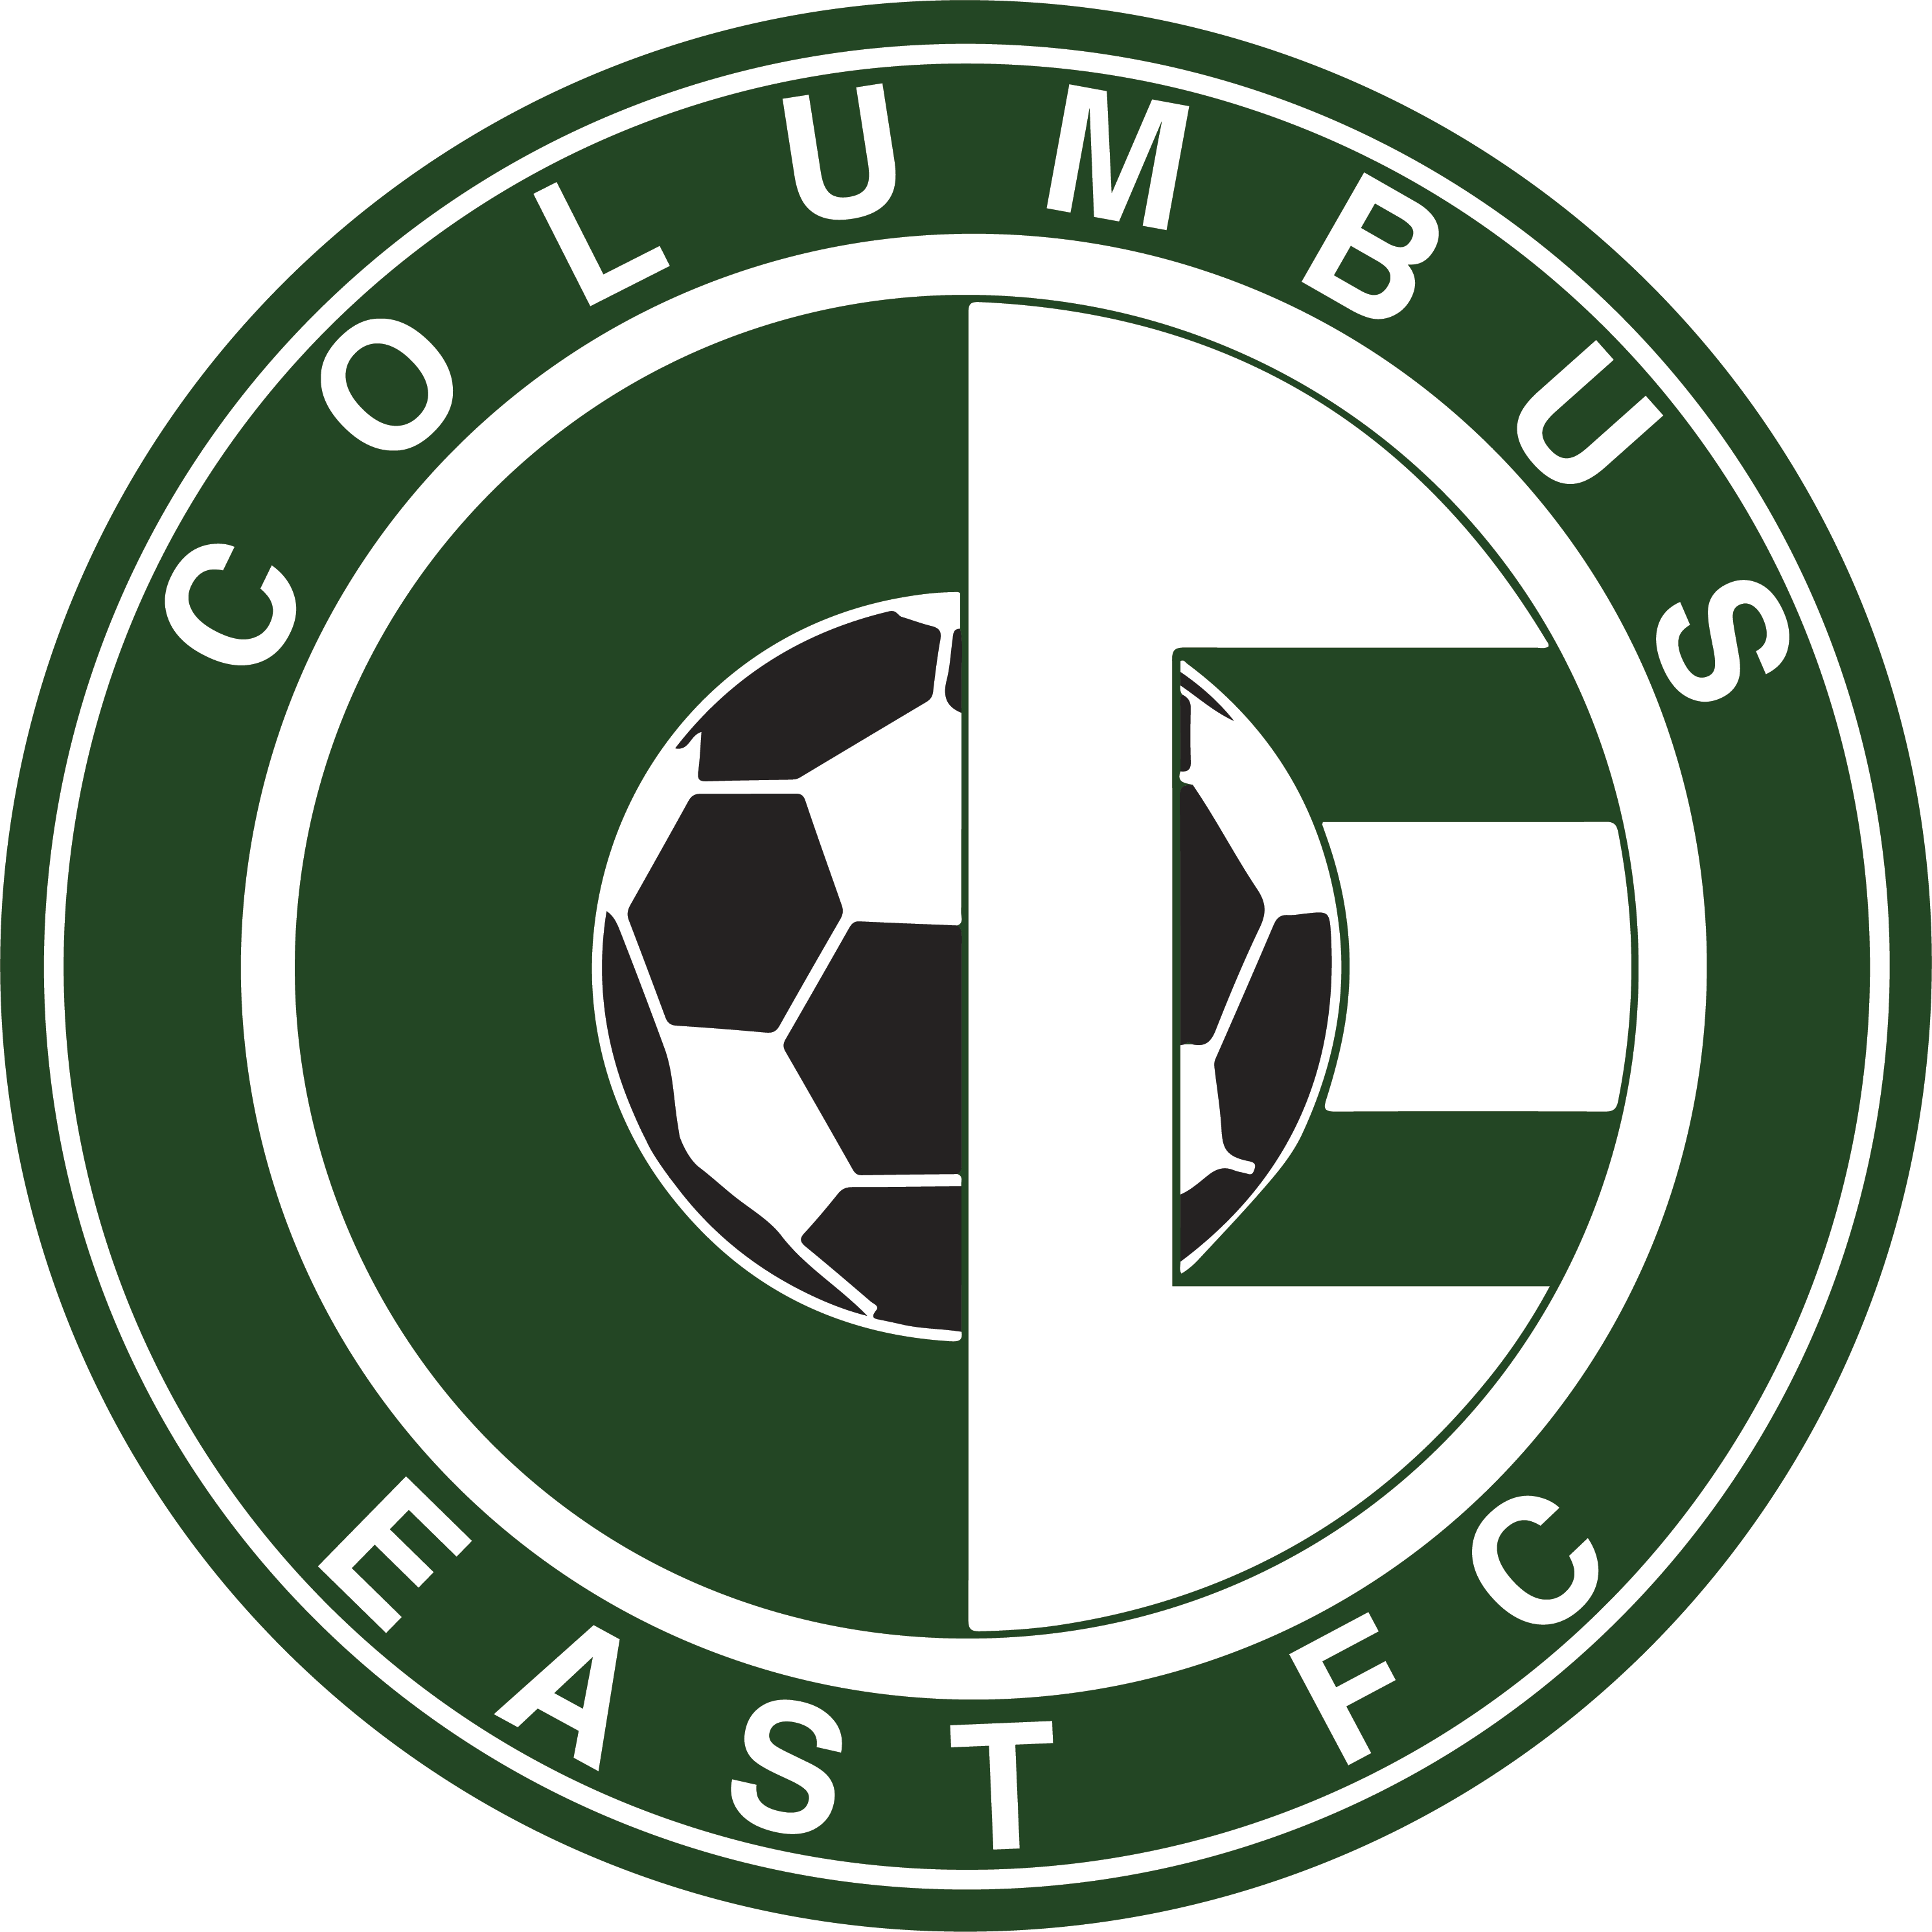 columbuseast